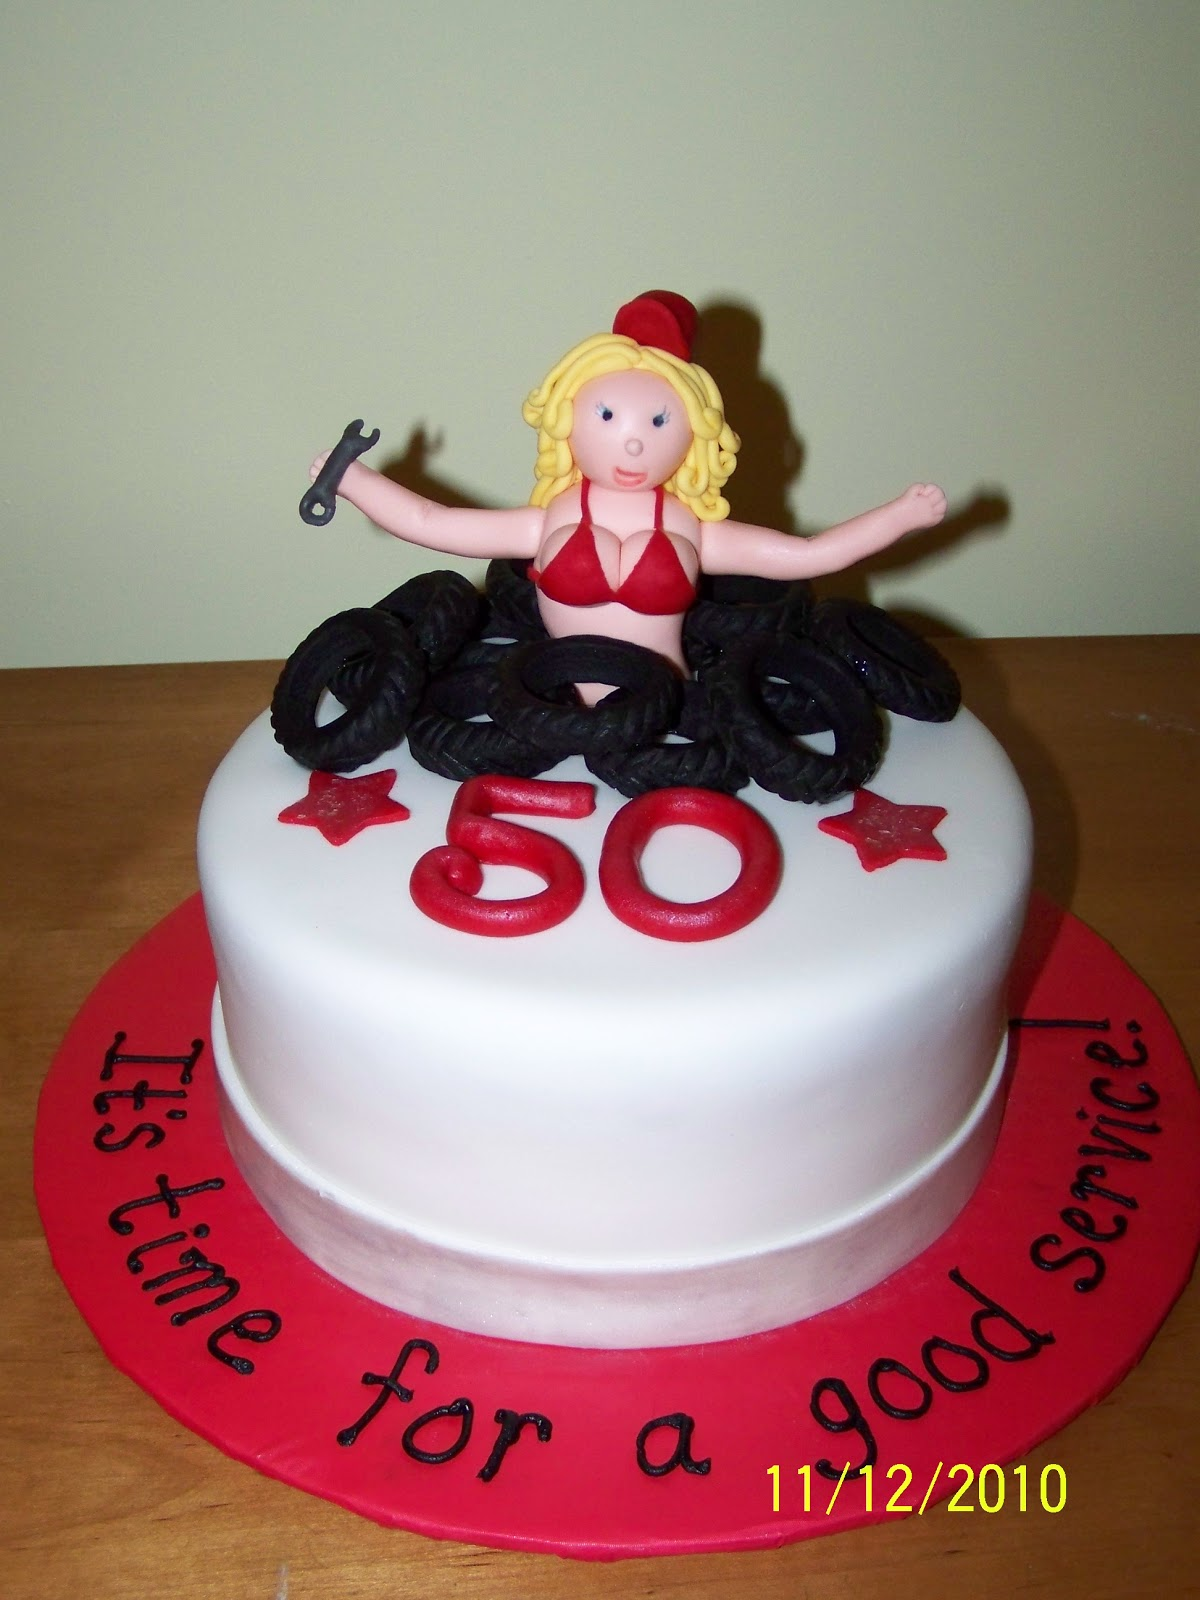 Naughty Birthday Cakes for Men http://cakesbykristenh.blogspot.com/2010/11/mans-50th-birthday-cake.html